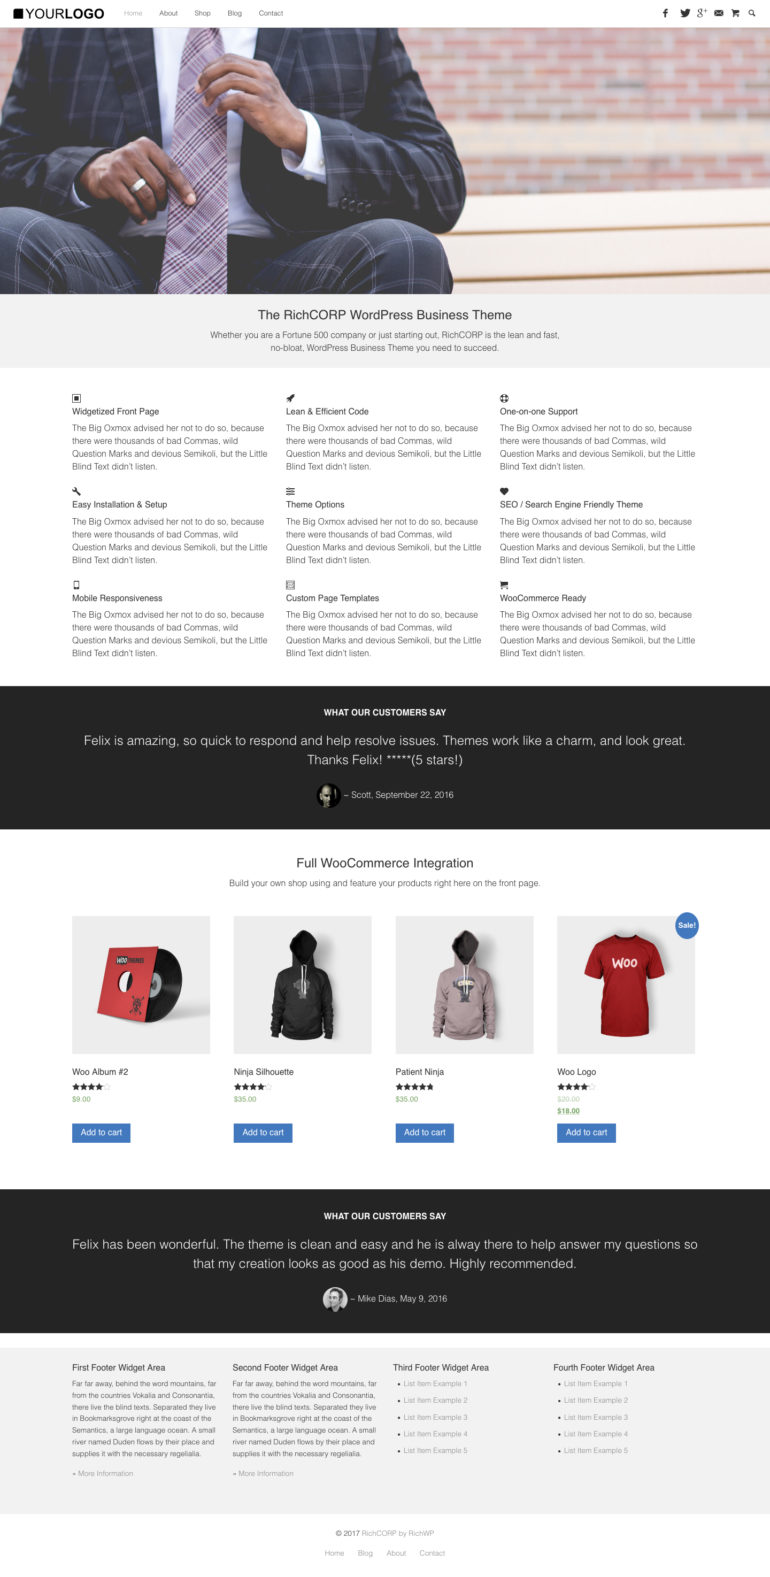 RichCORP - WordPress Business Theme